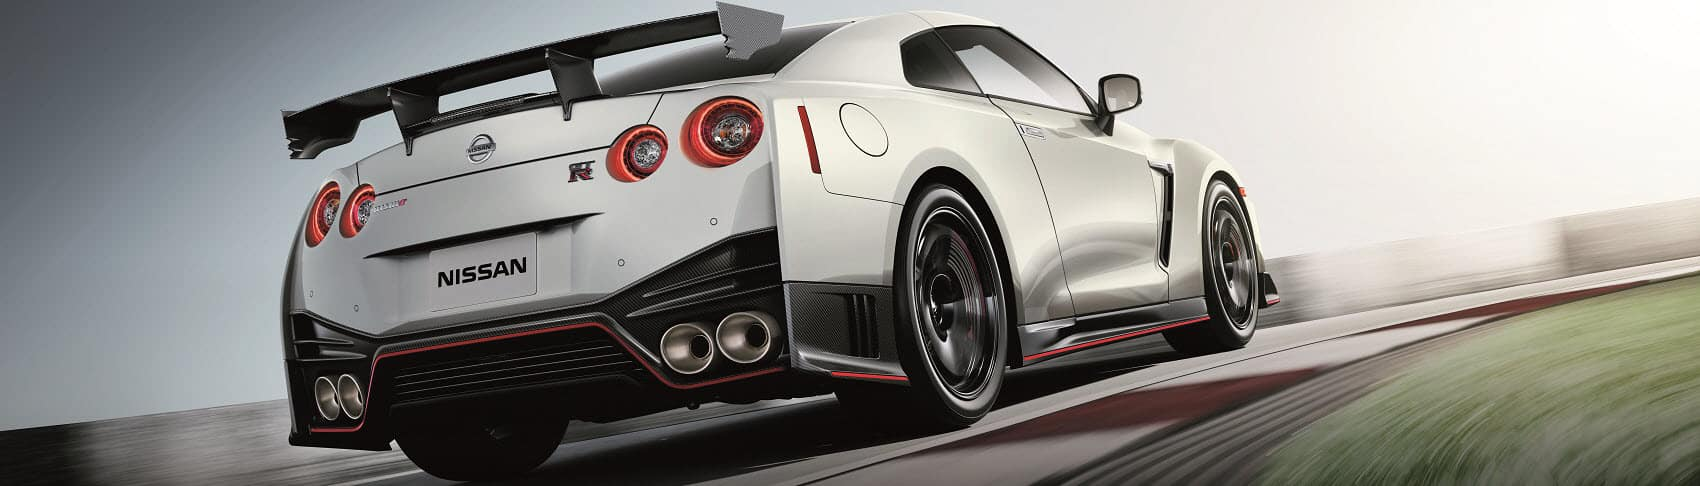 Nissan GT-R Rear End